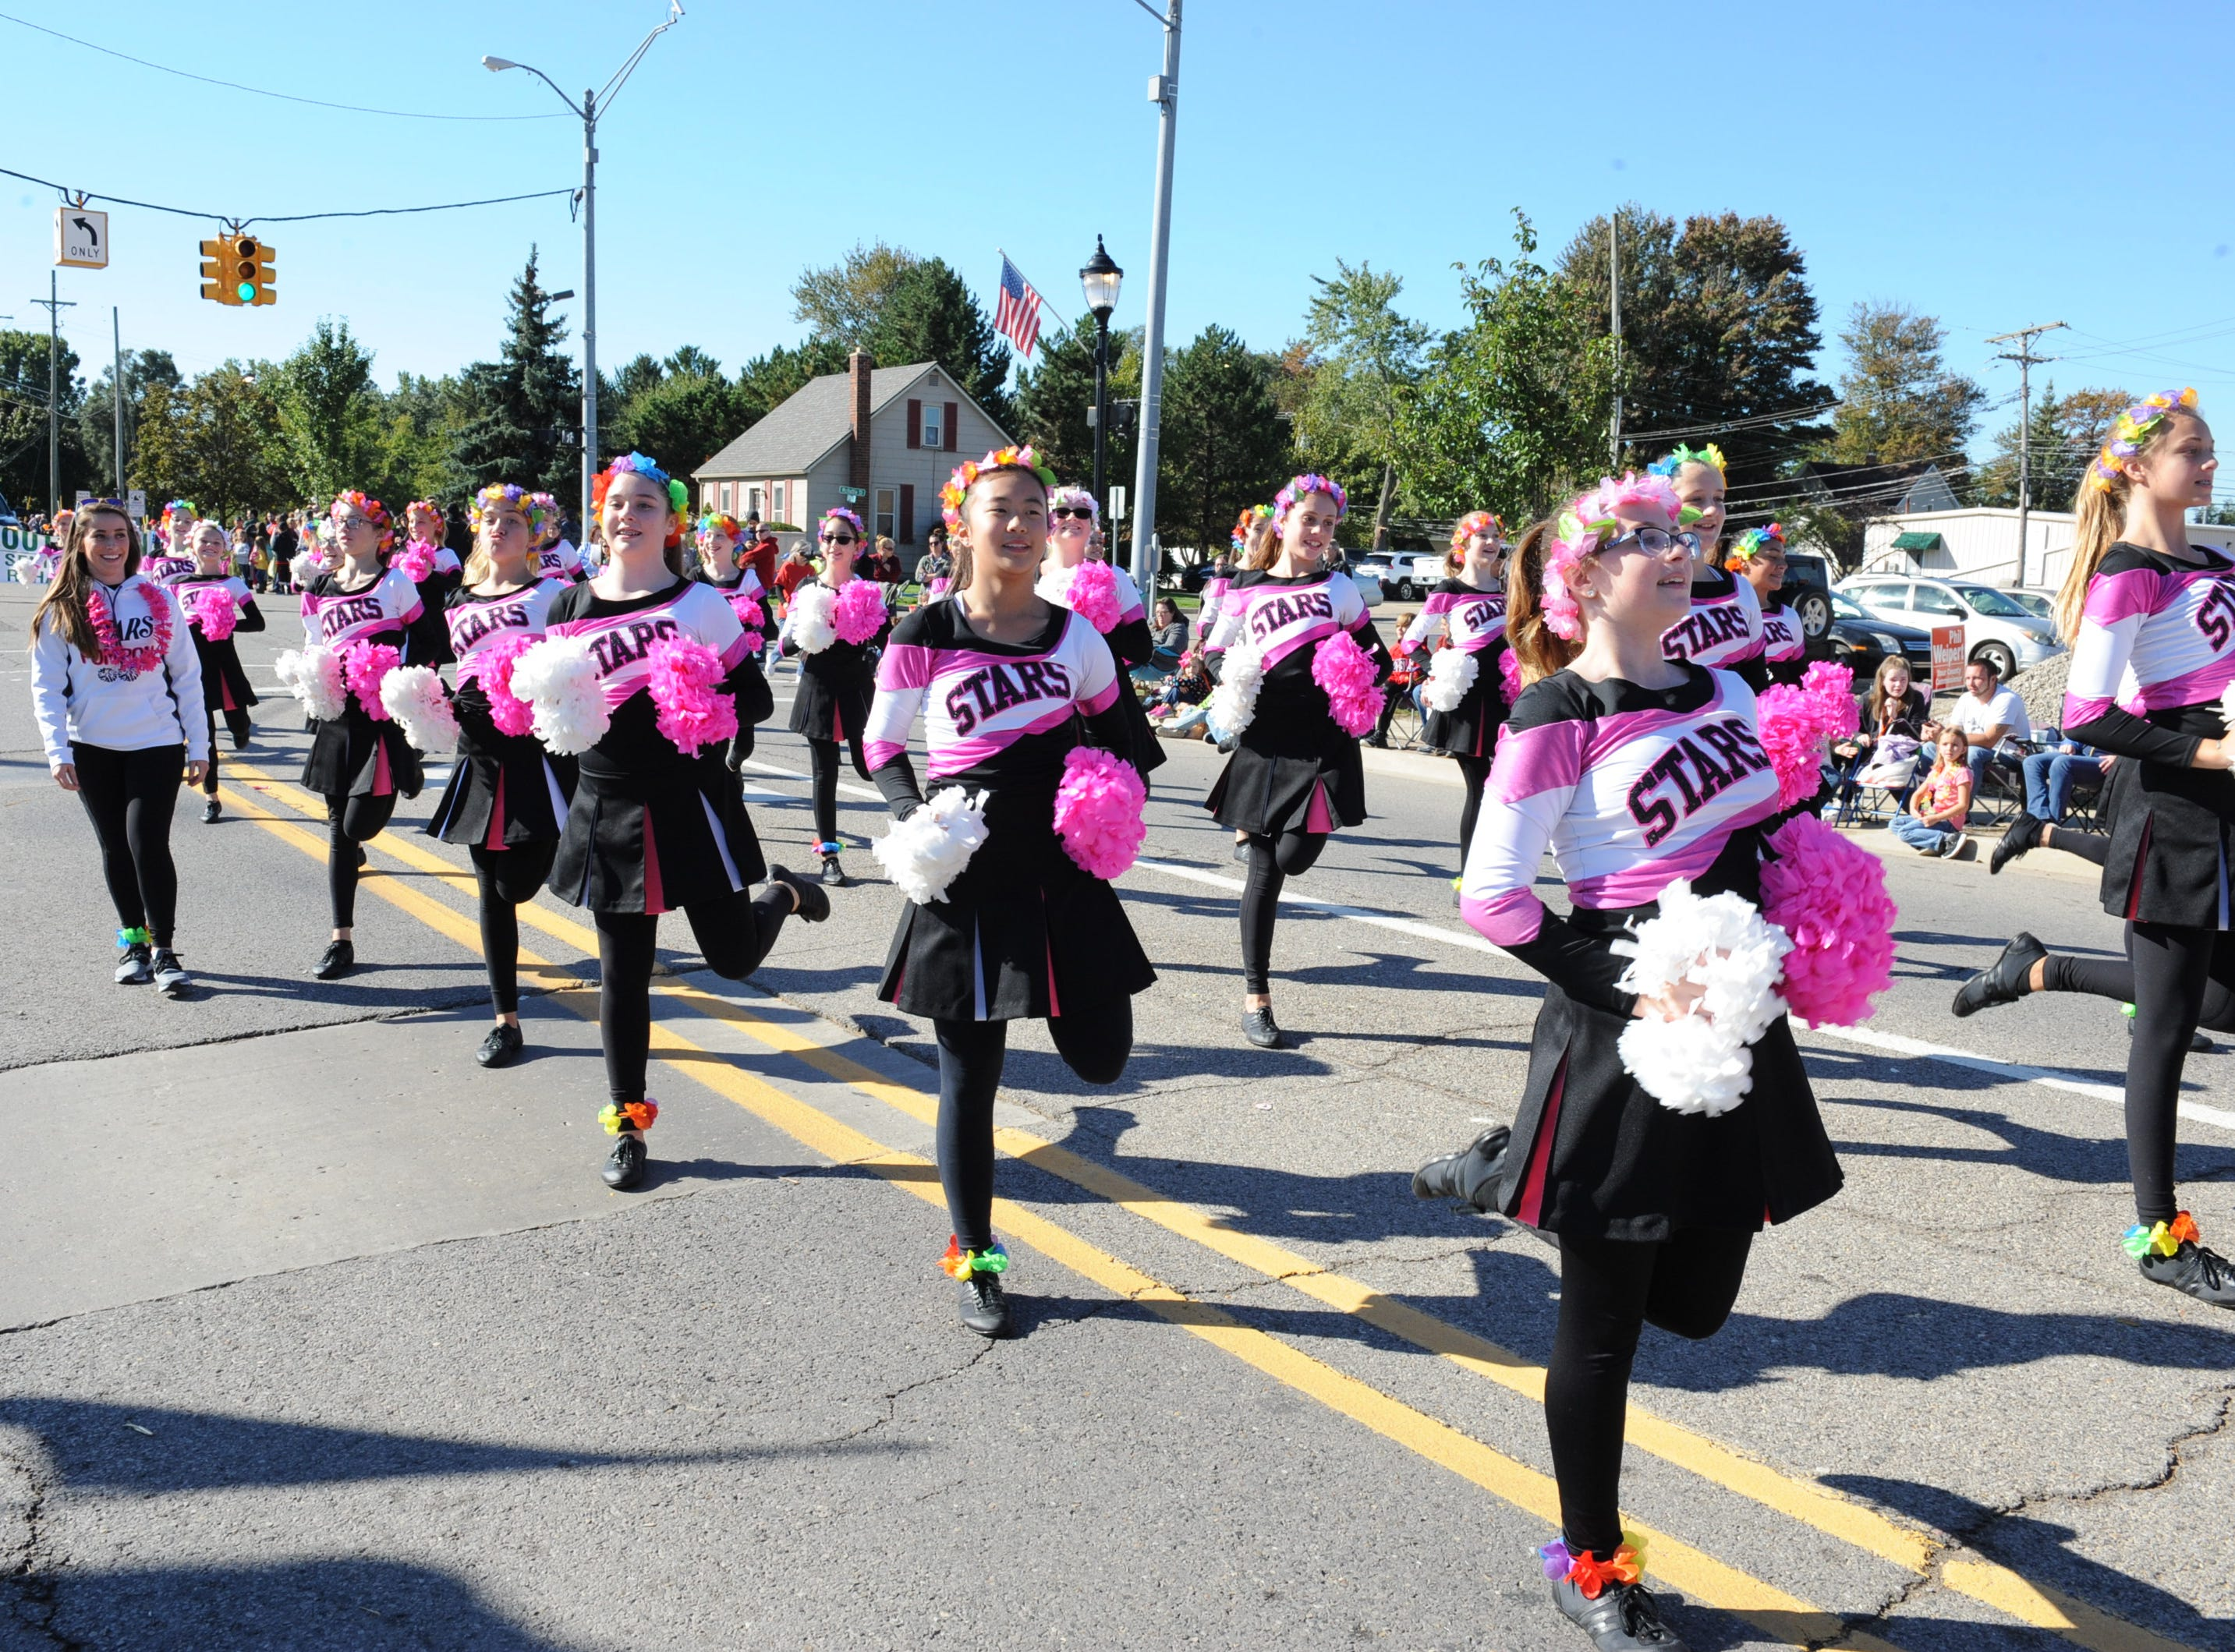 The South Lyon Stars pom team takes to the streets of South Lyon.